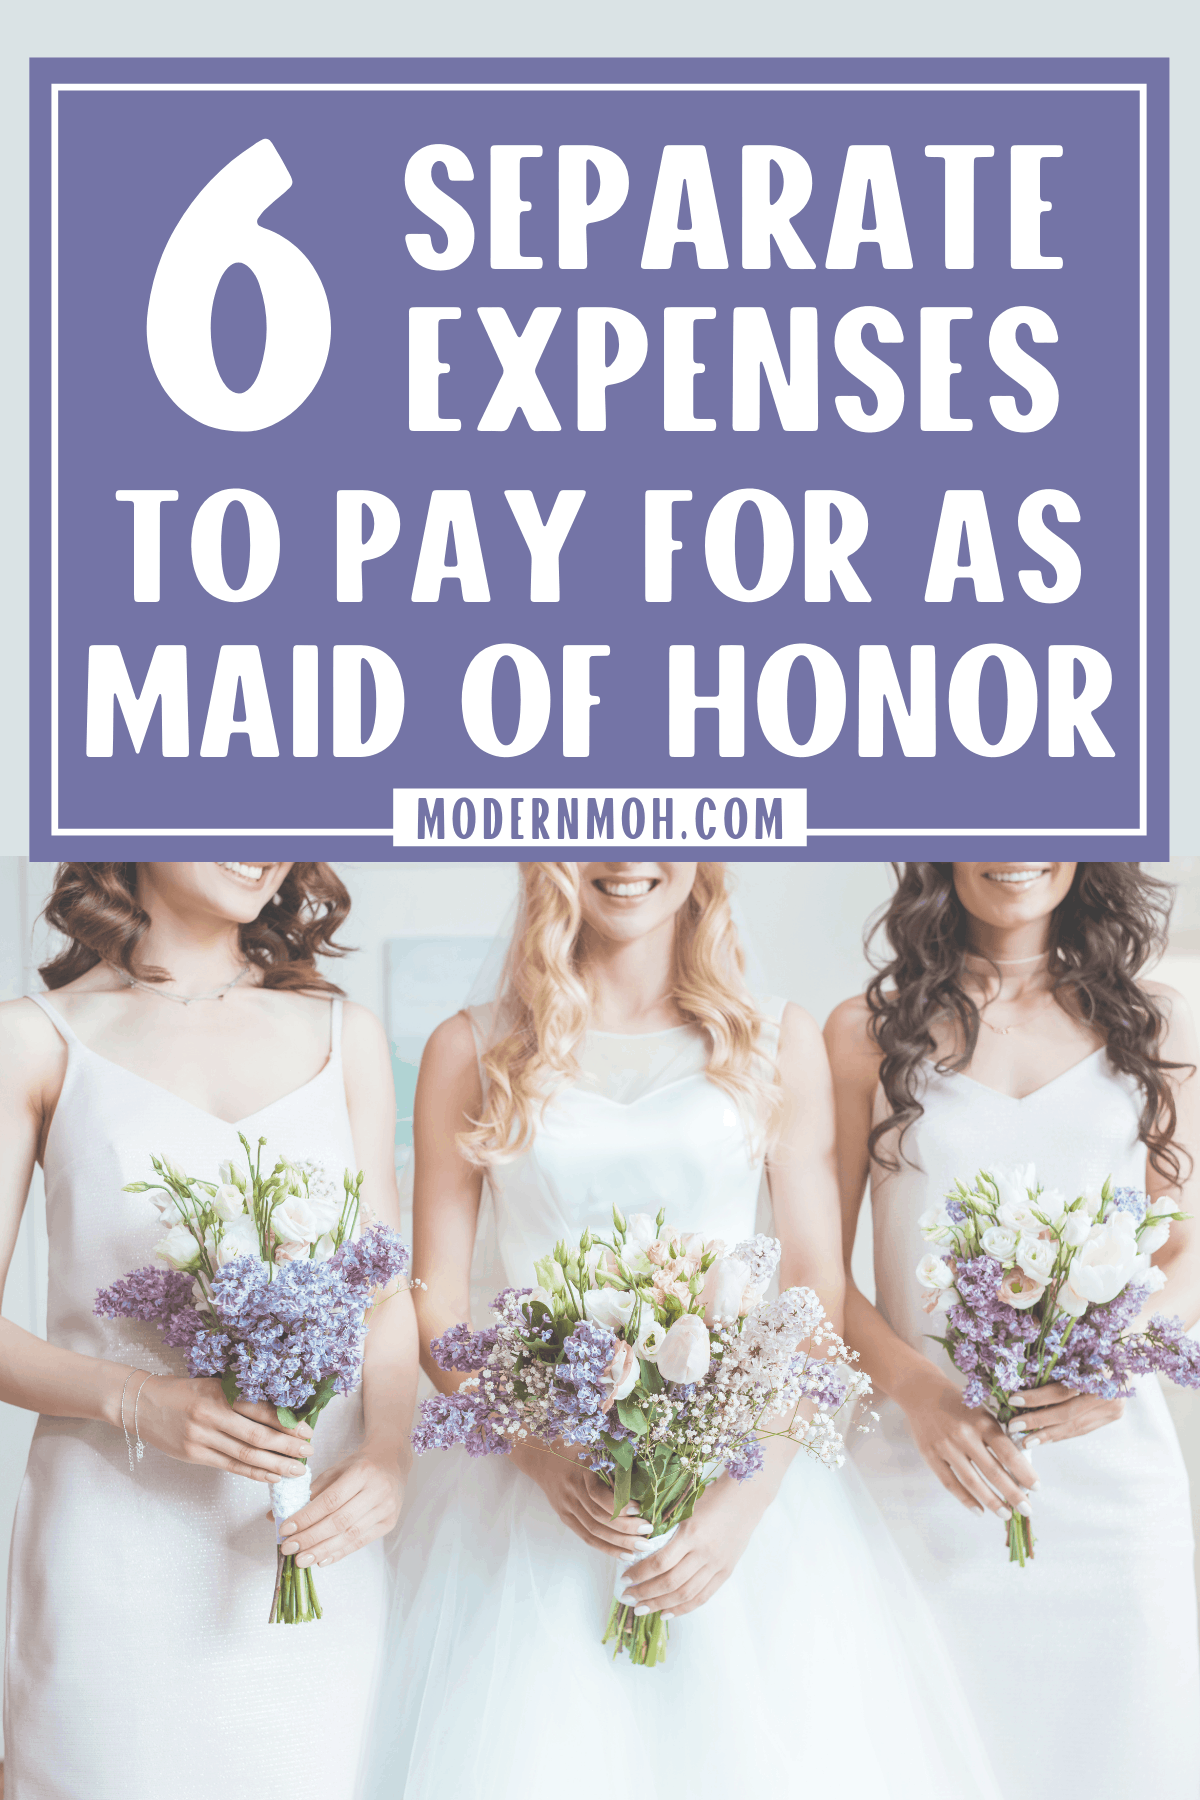 6 Expenses Maids of Honor Should Expect to Pay For